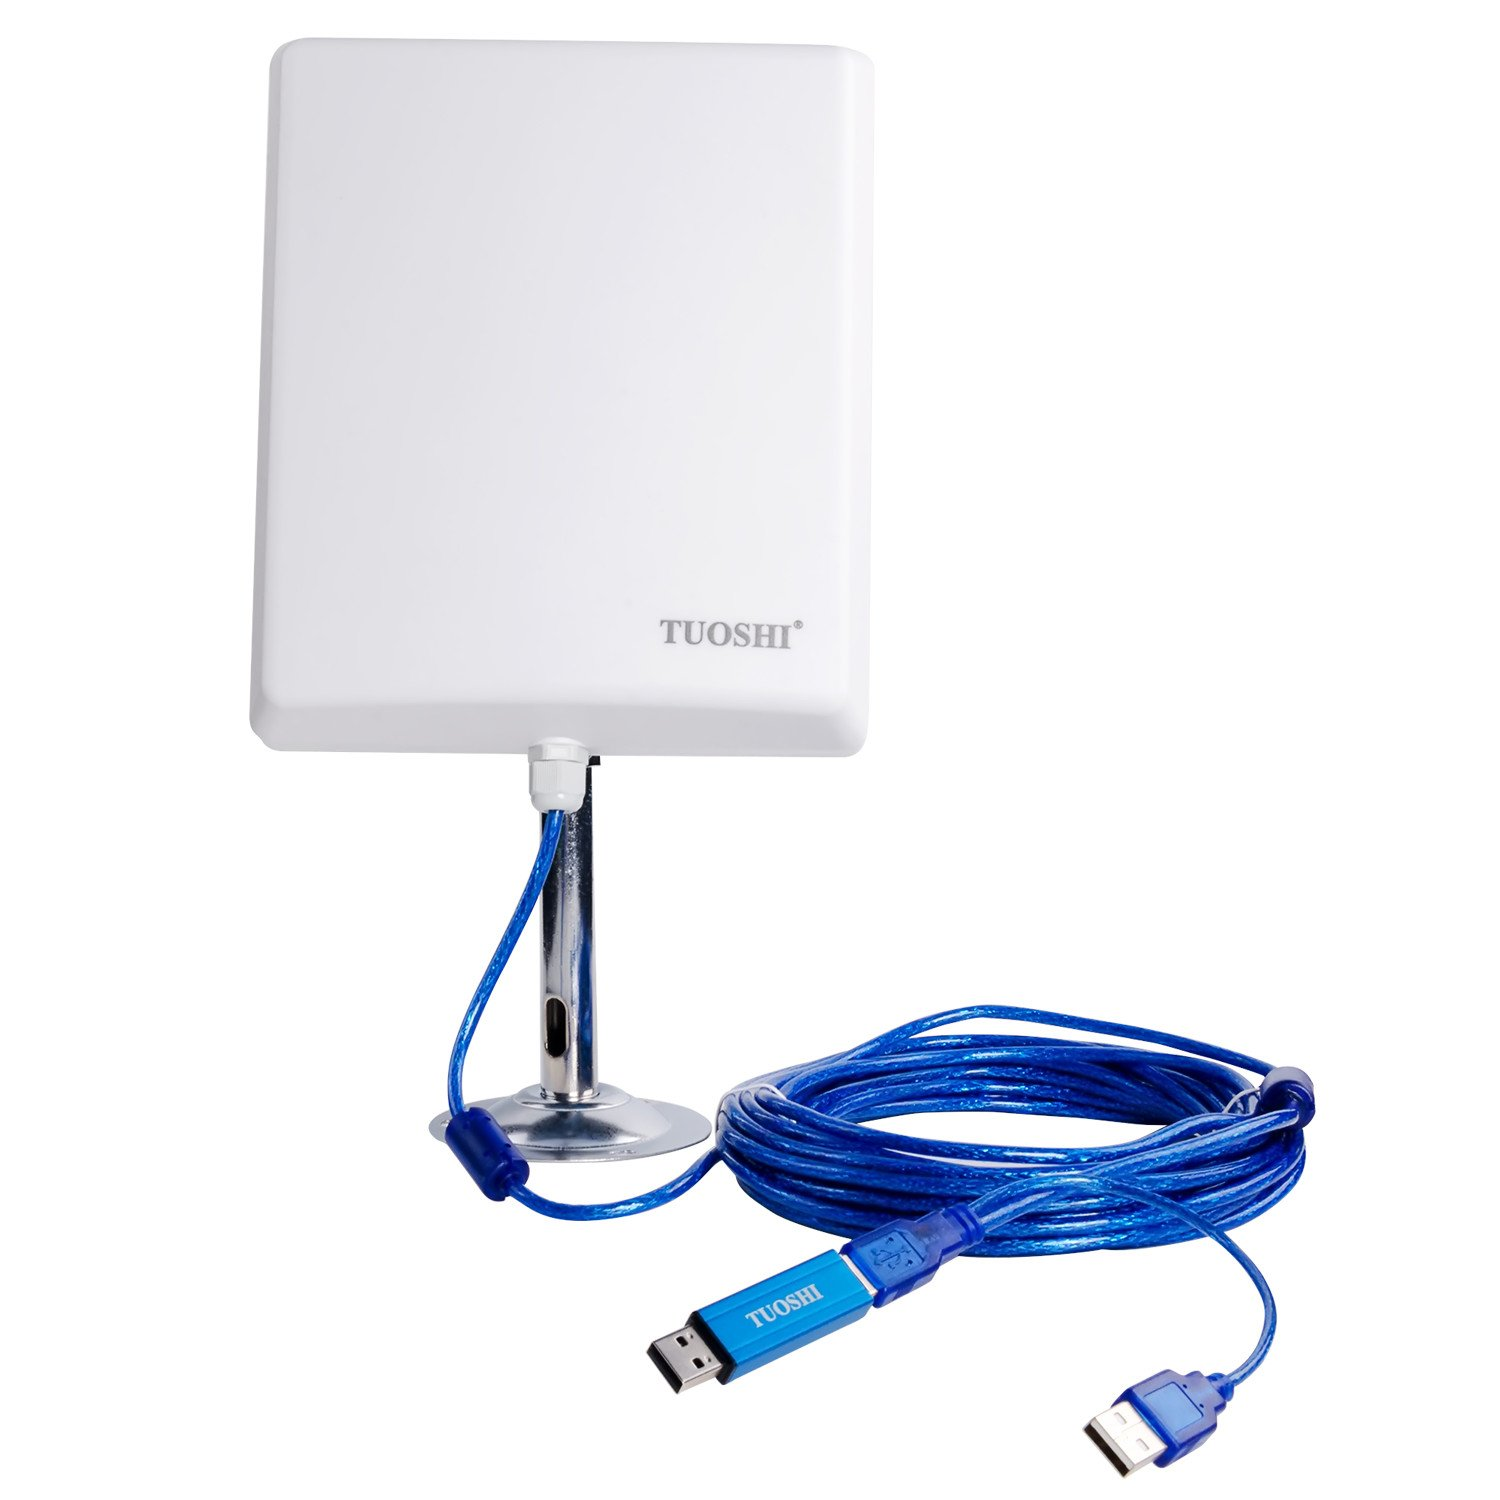 TUOSHI N4000 Long Range Indoor Outdoor USB WiFi Wireless Adapter with 36dBi High Gain Antenna Extension Cable 150Mbps by TUOSHI